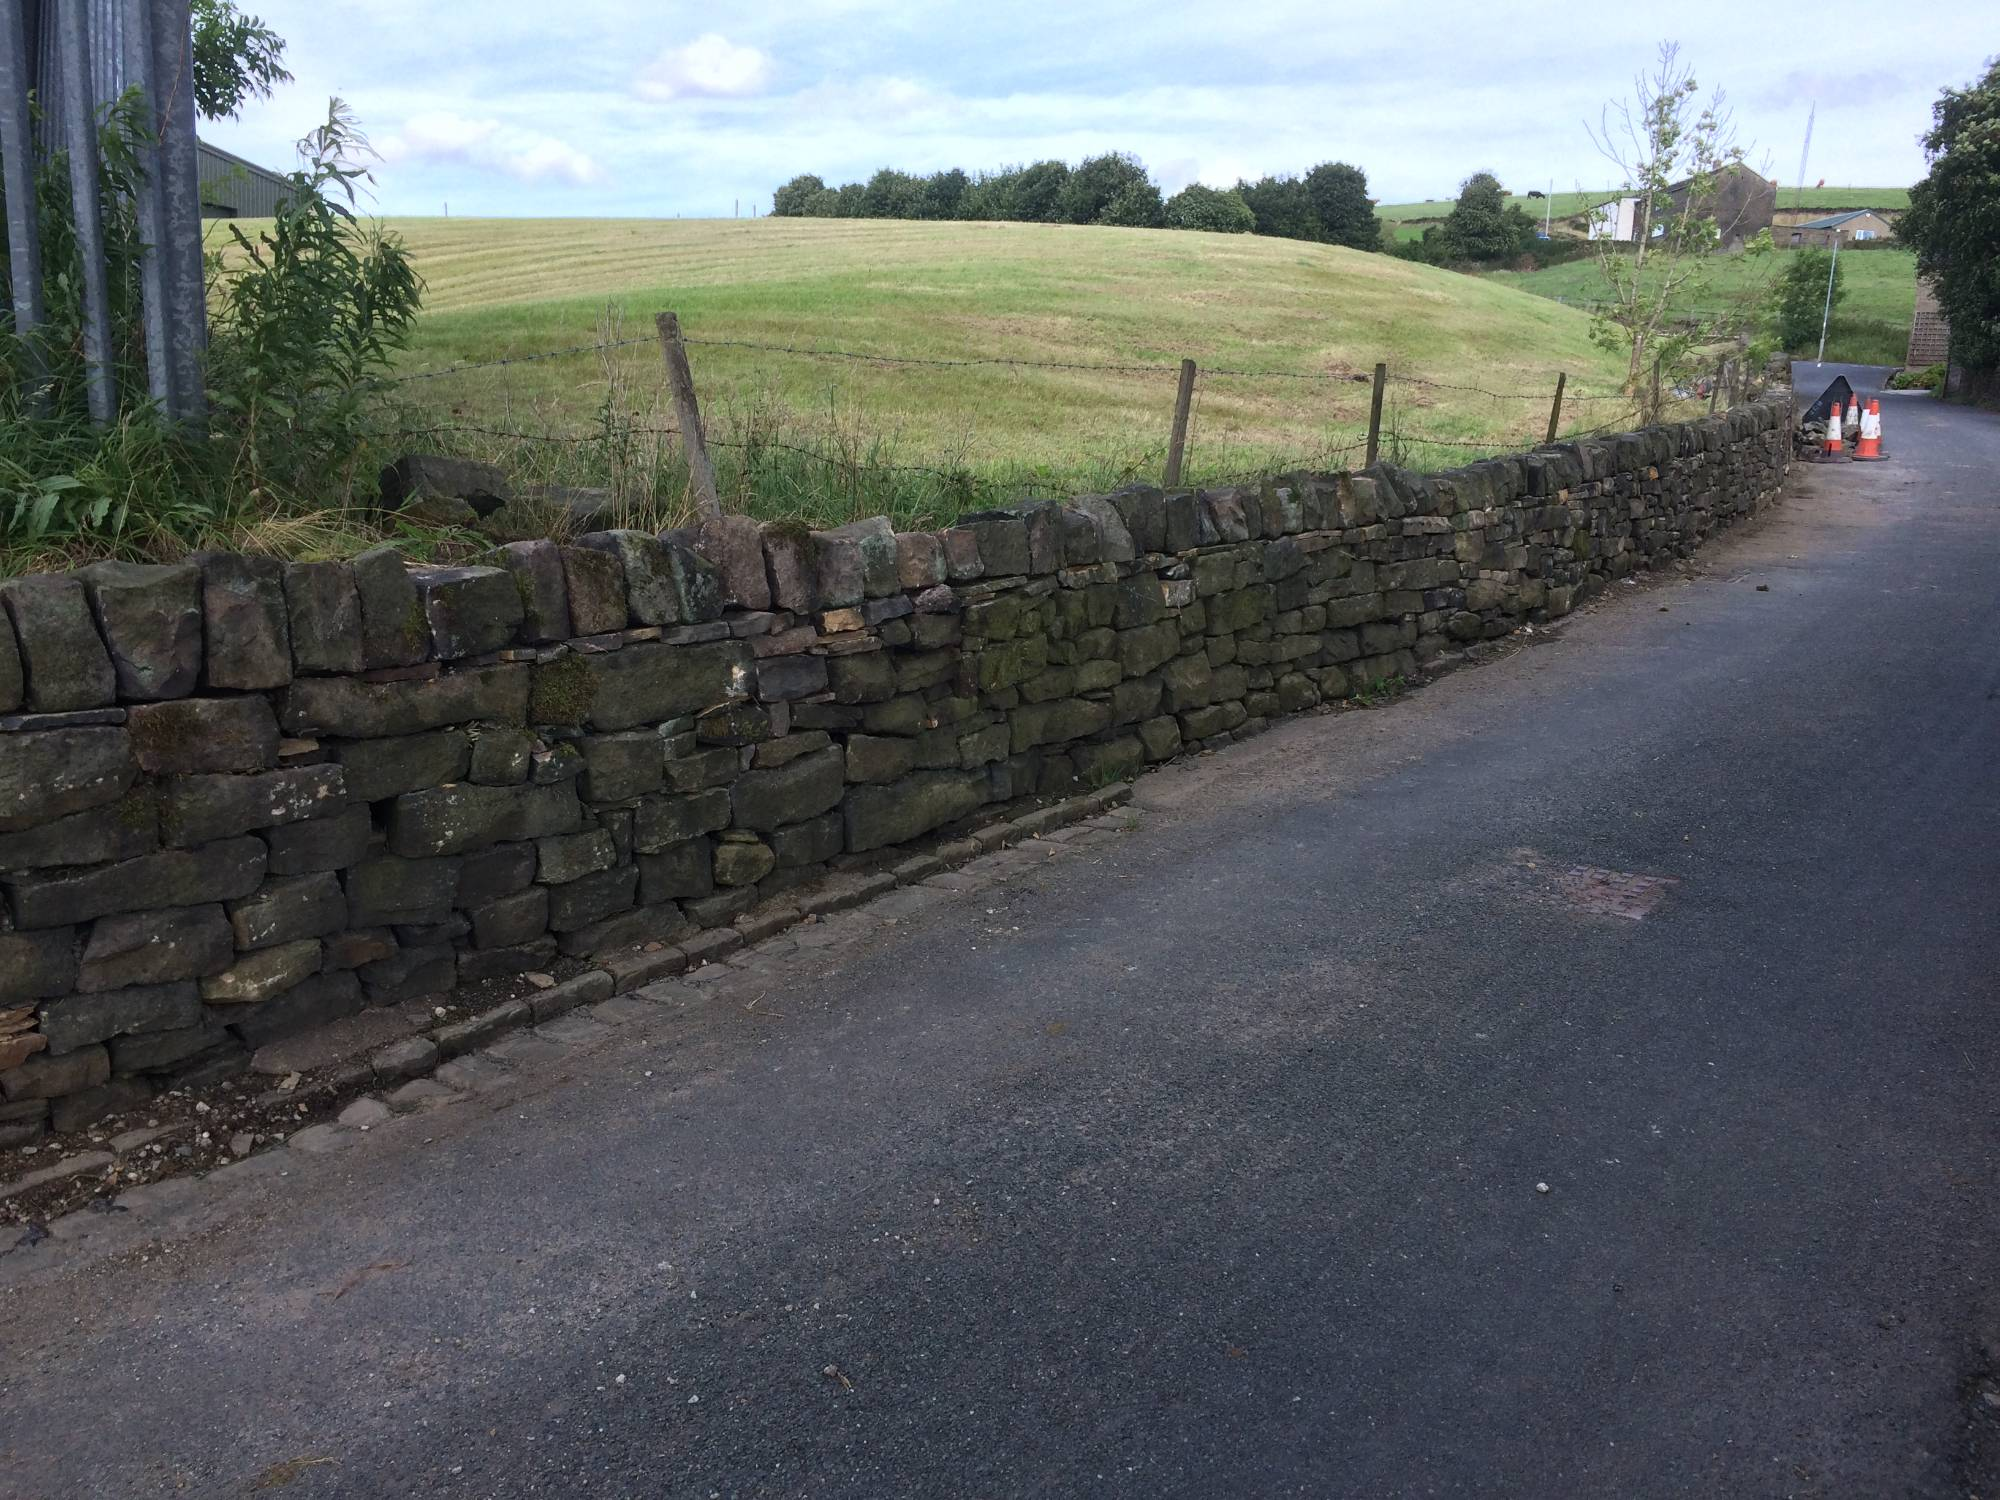 A new dry stone wall